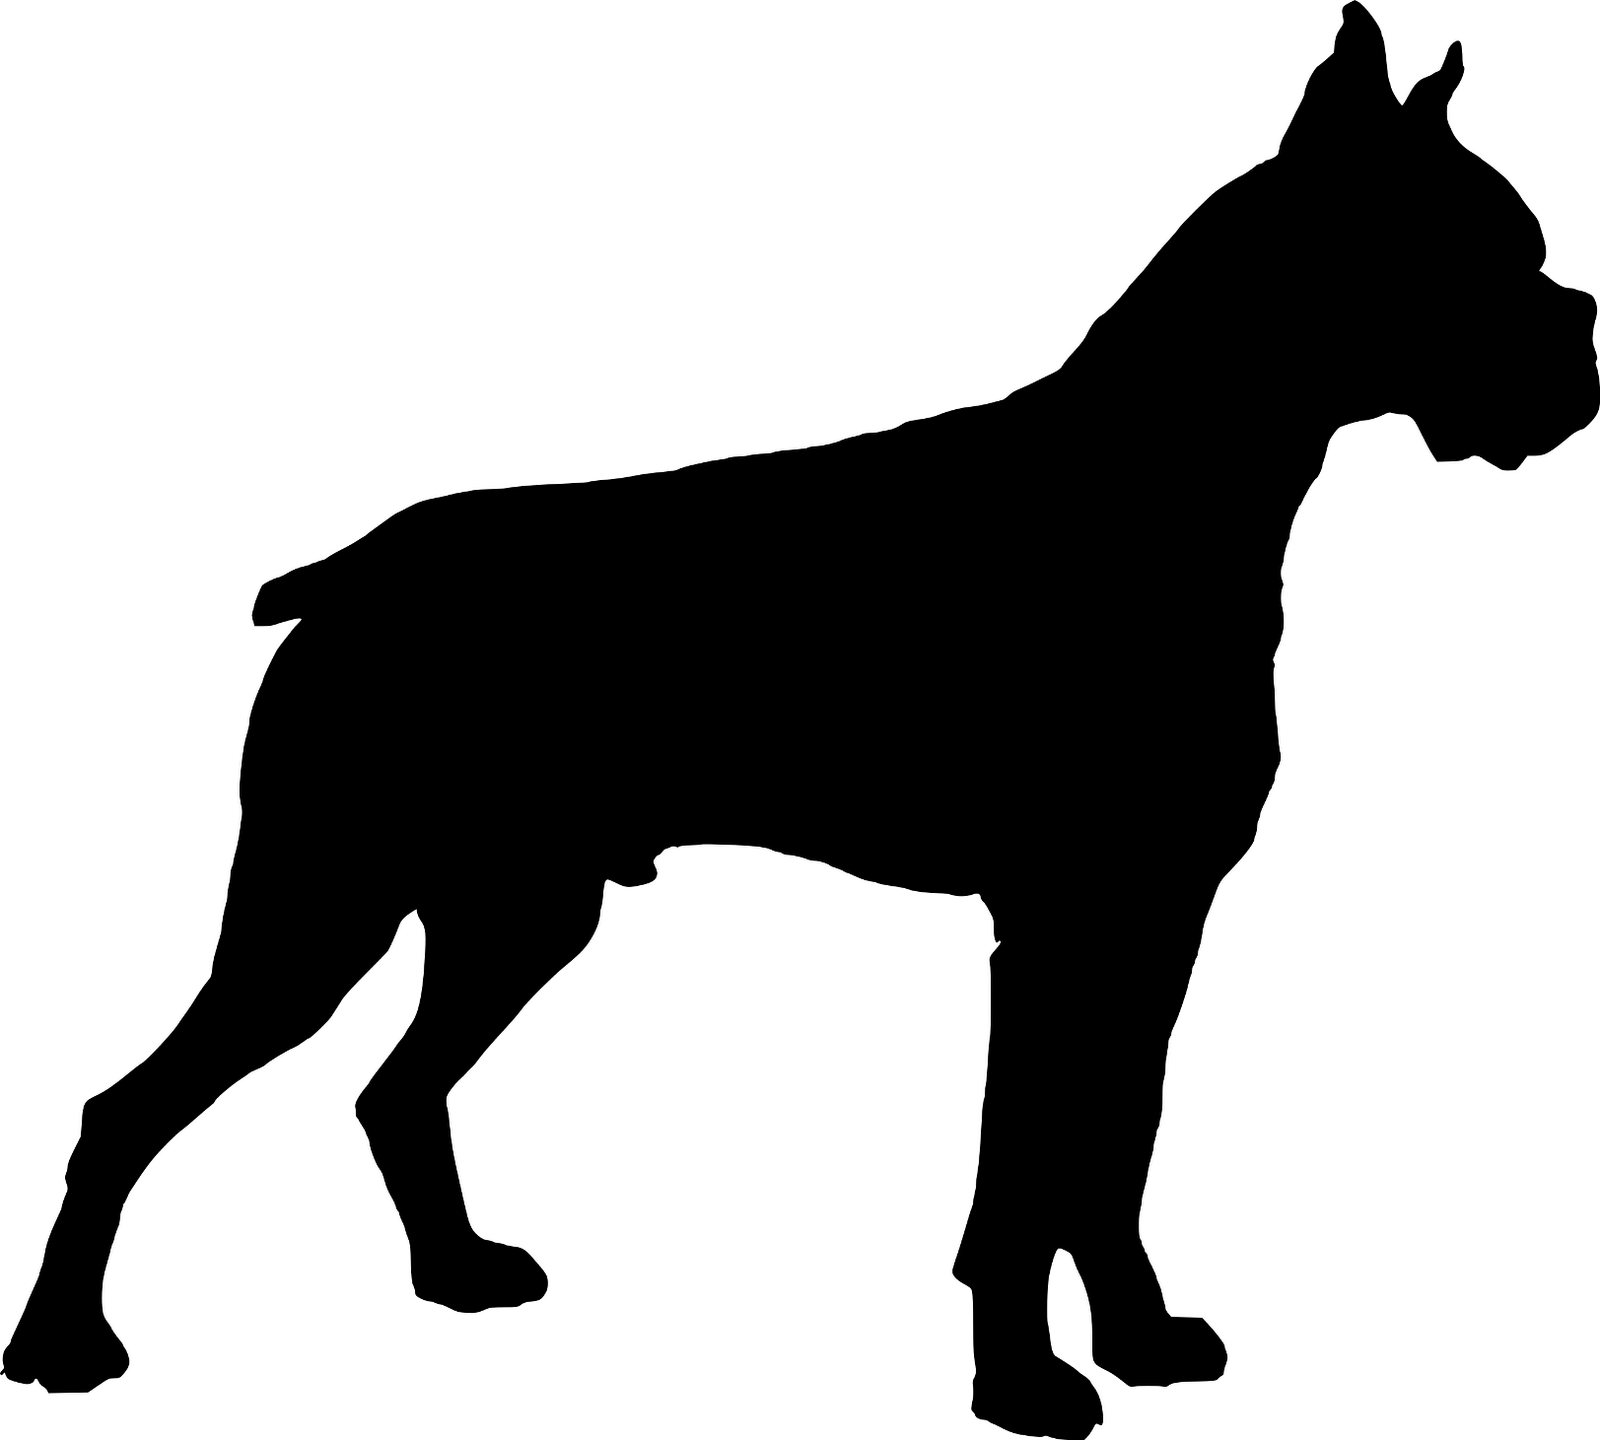 Boxers dogs clipart image download Boxer Dog Clipart Dog Image Dog Image - Clip Art Library image download